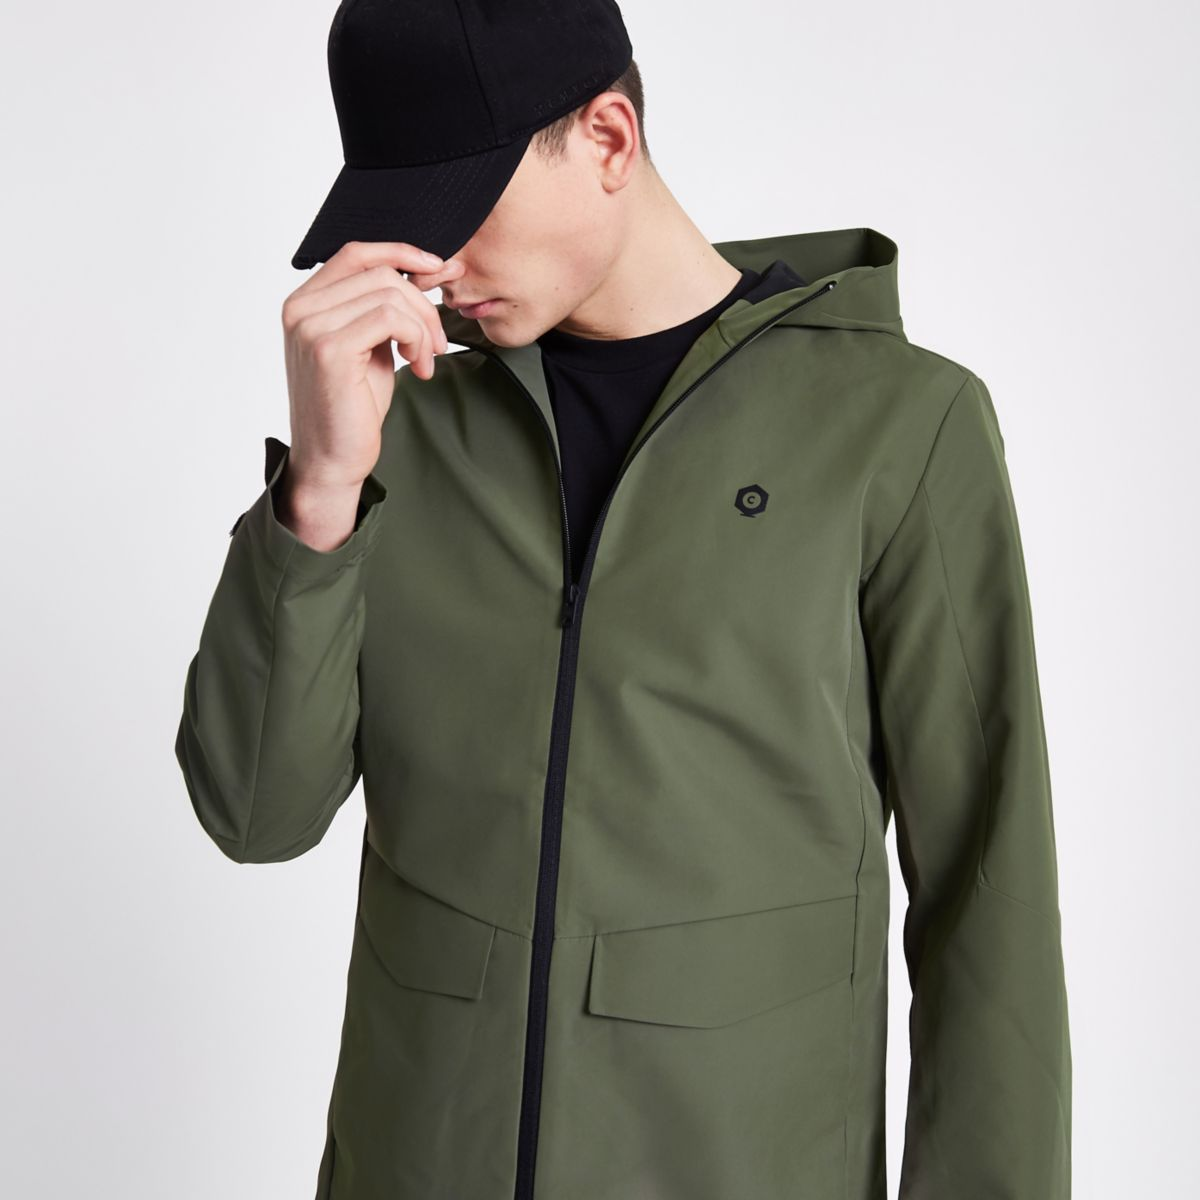 Jack & Jones Core green lightweight jacket